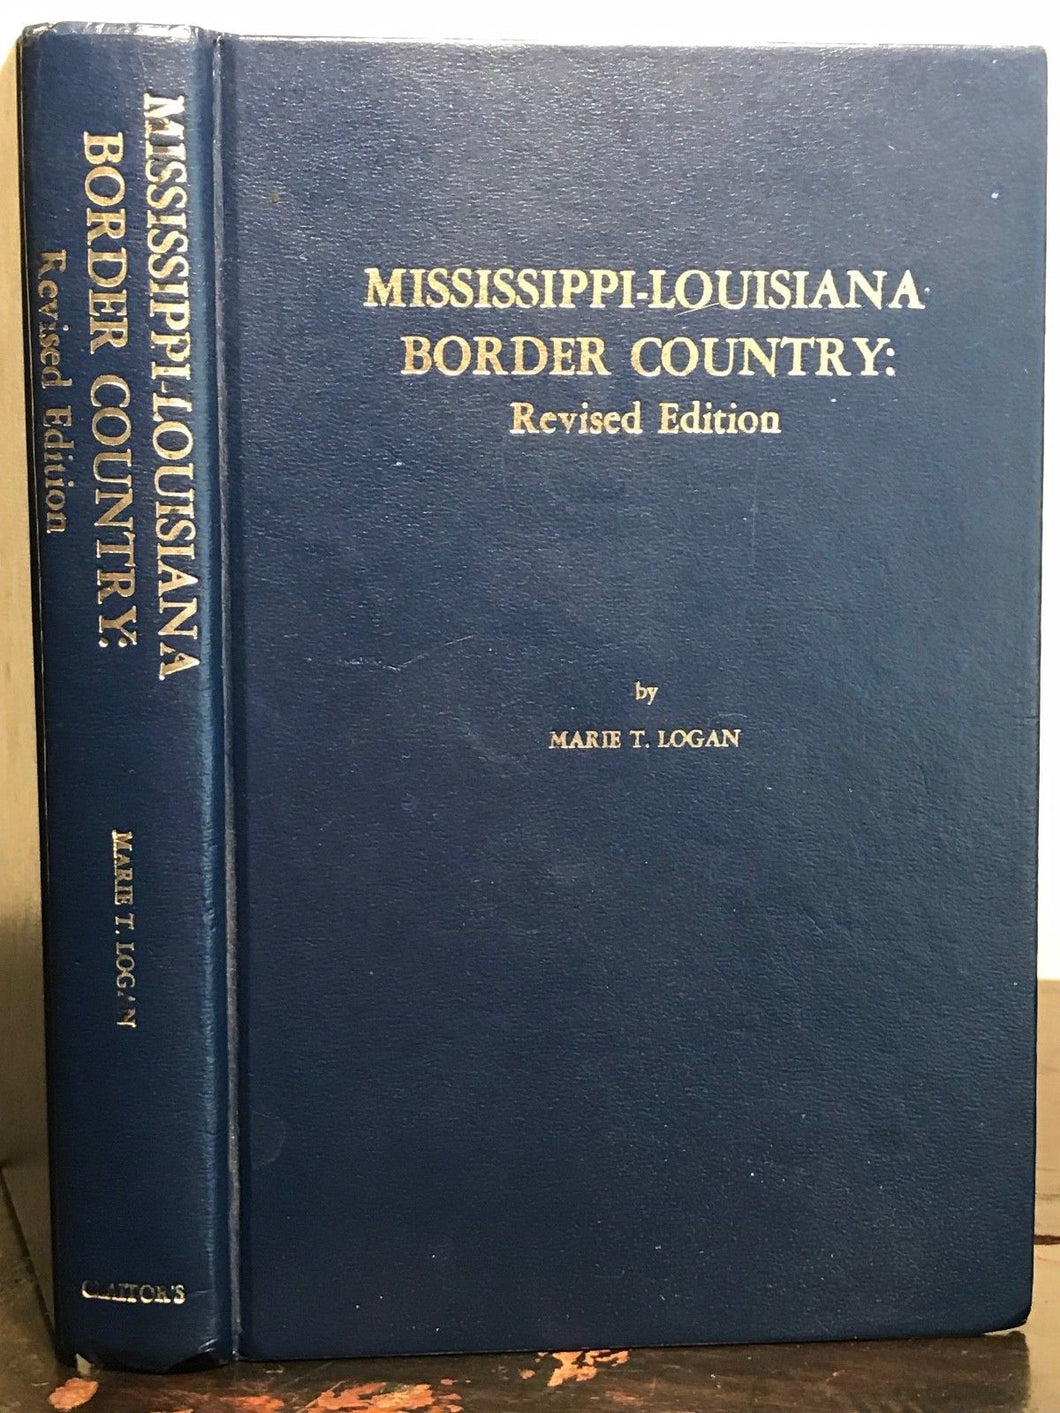 SIGNED - Mississippi-Louisiana Border Country - M. Logan 1980, SOUTHERN HISTORY